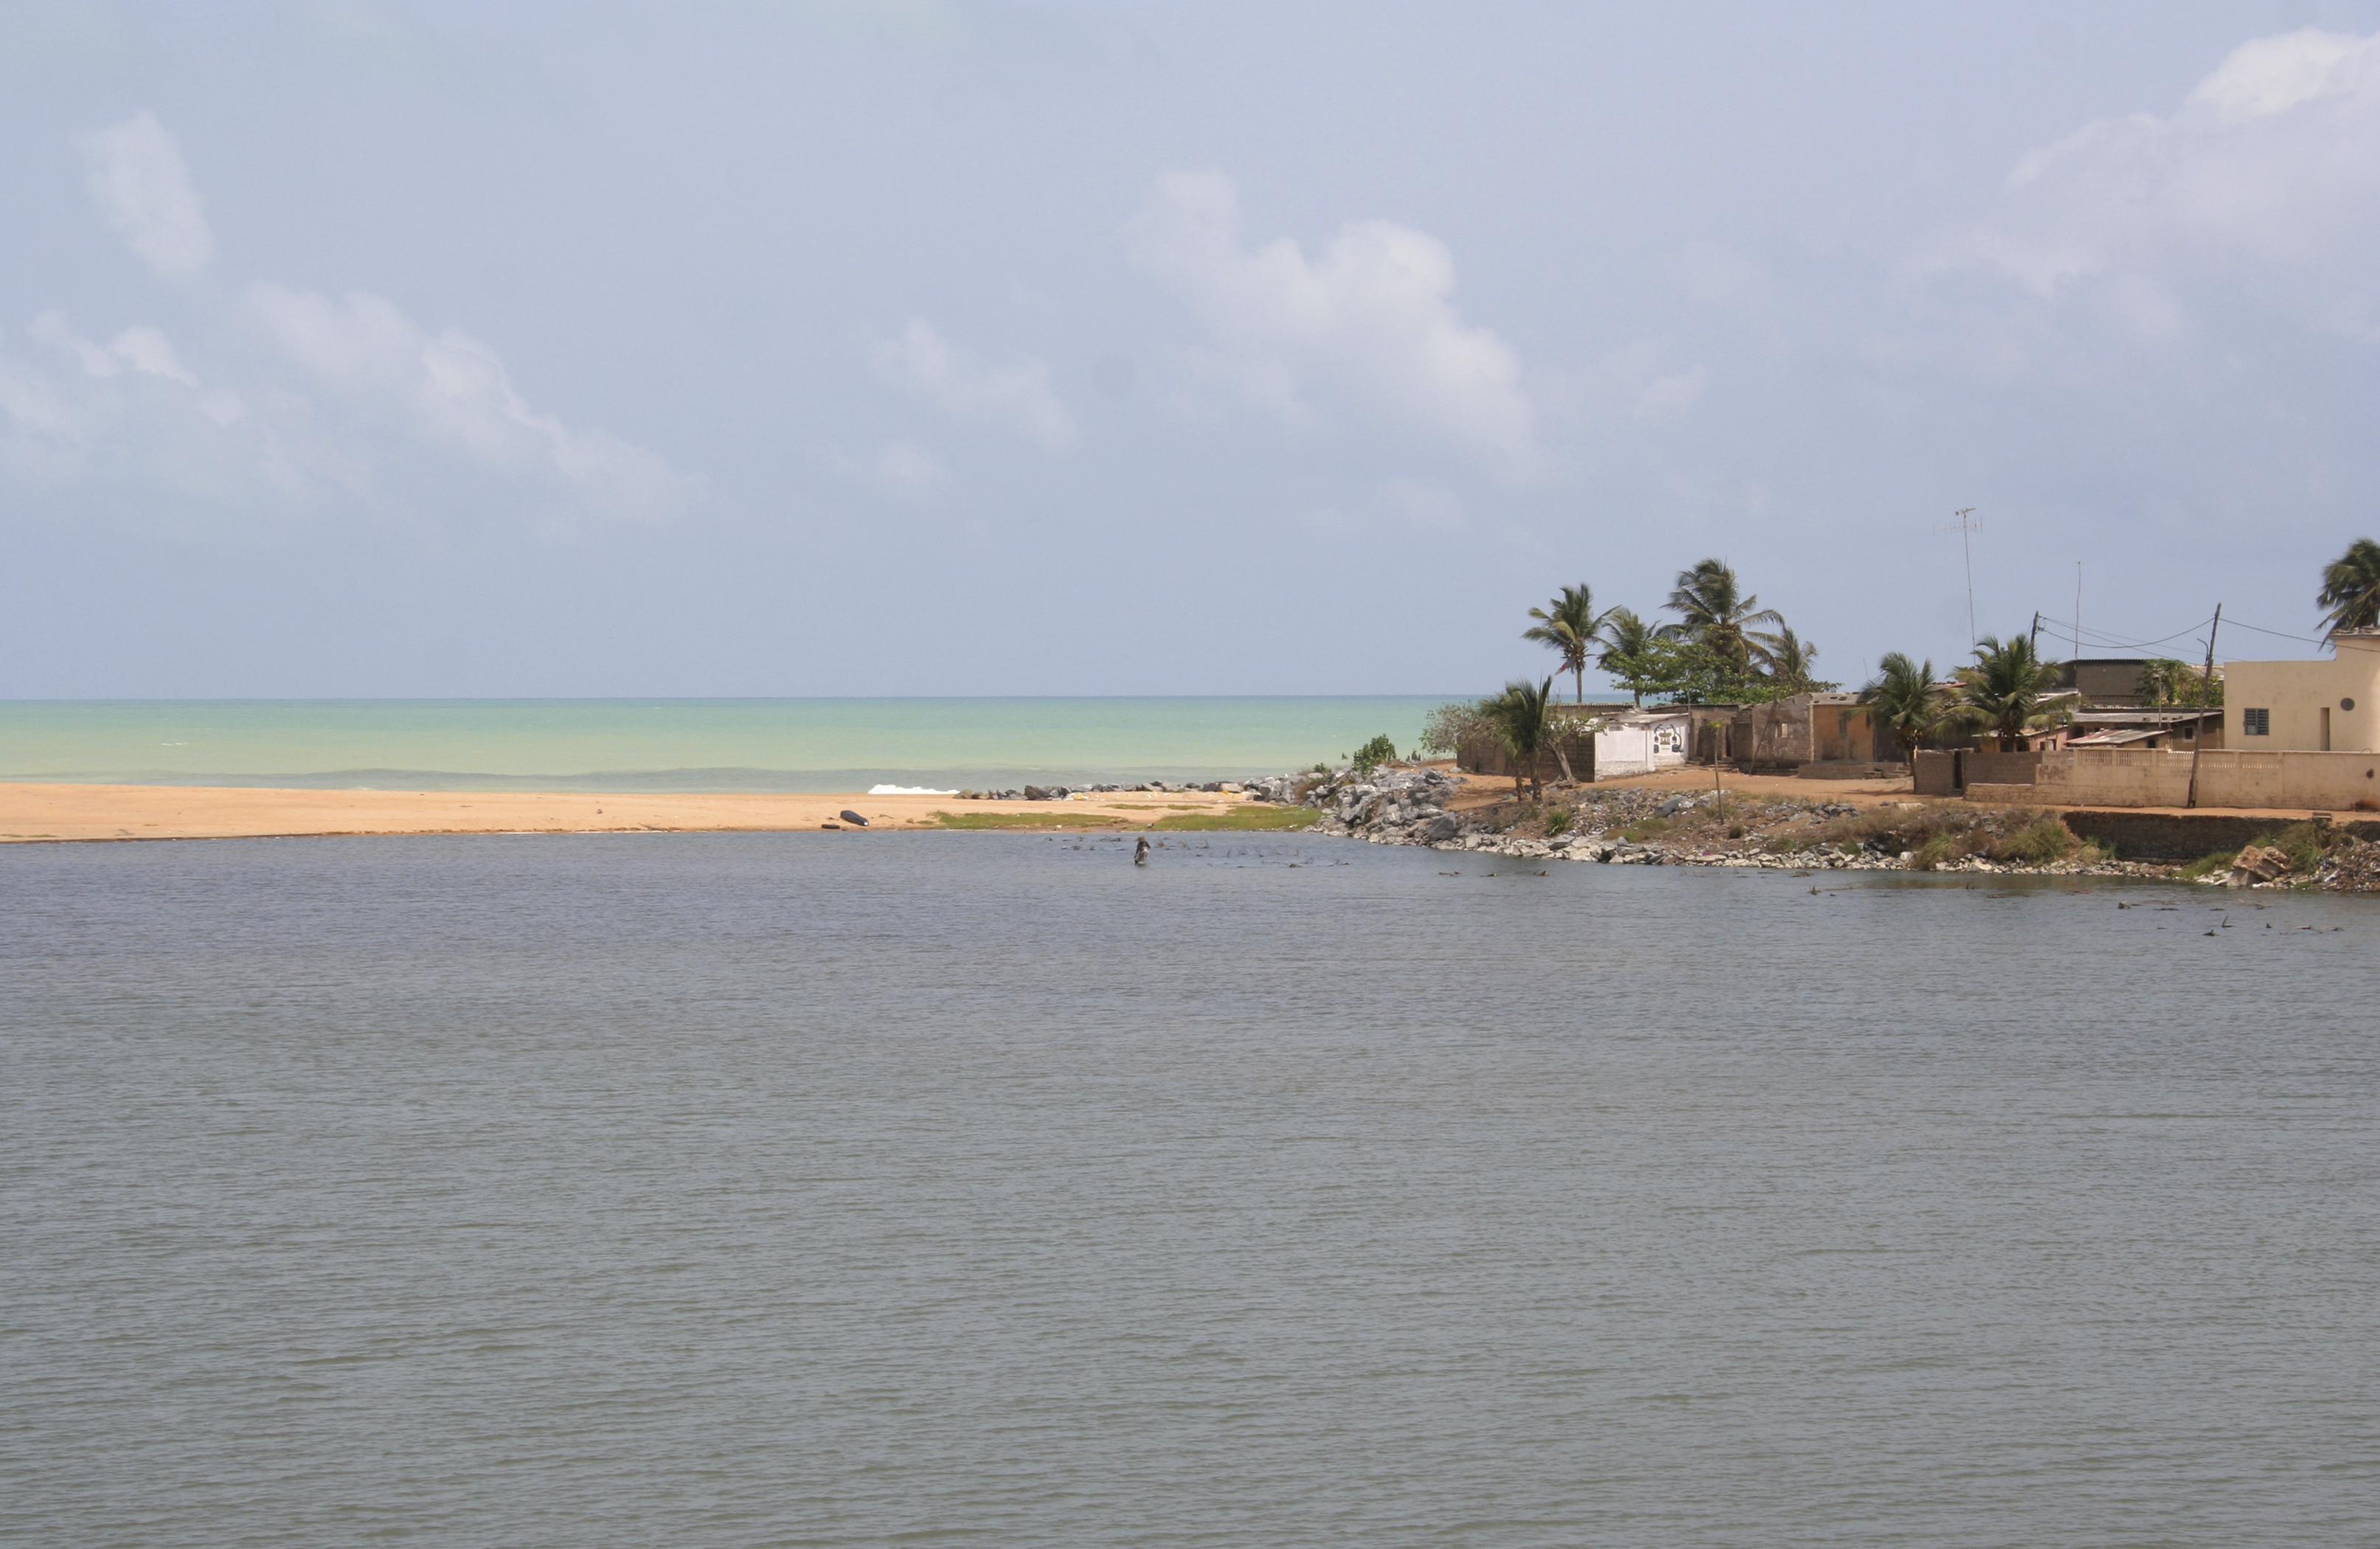 Lagoon and Ocean meeting, Togo